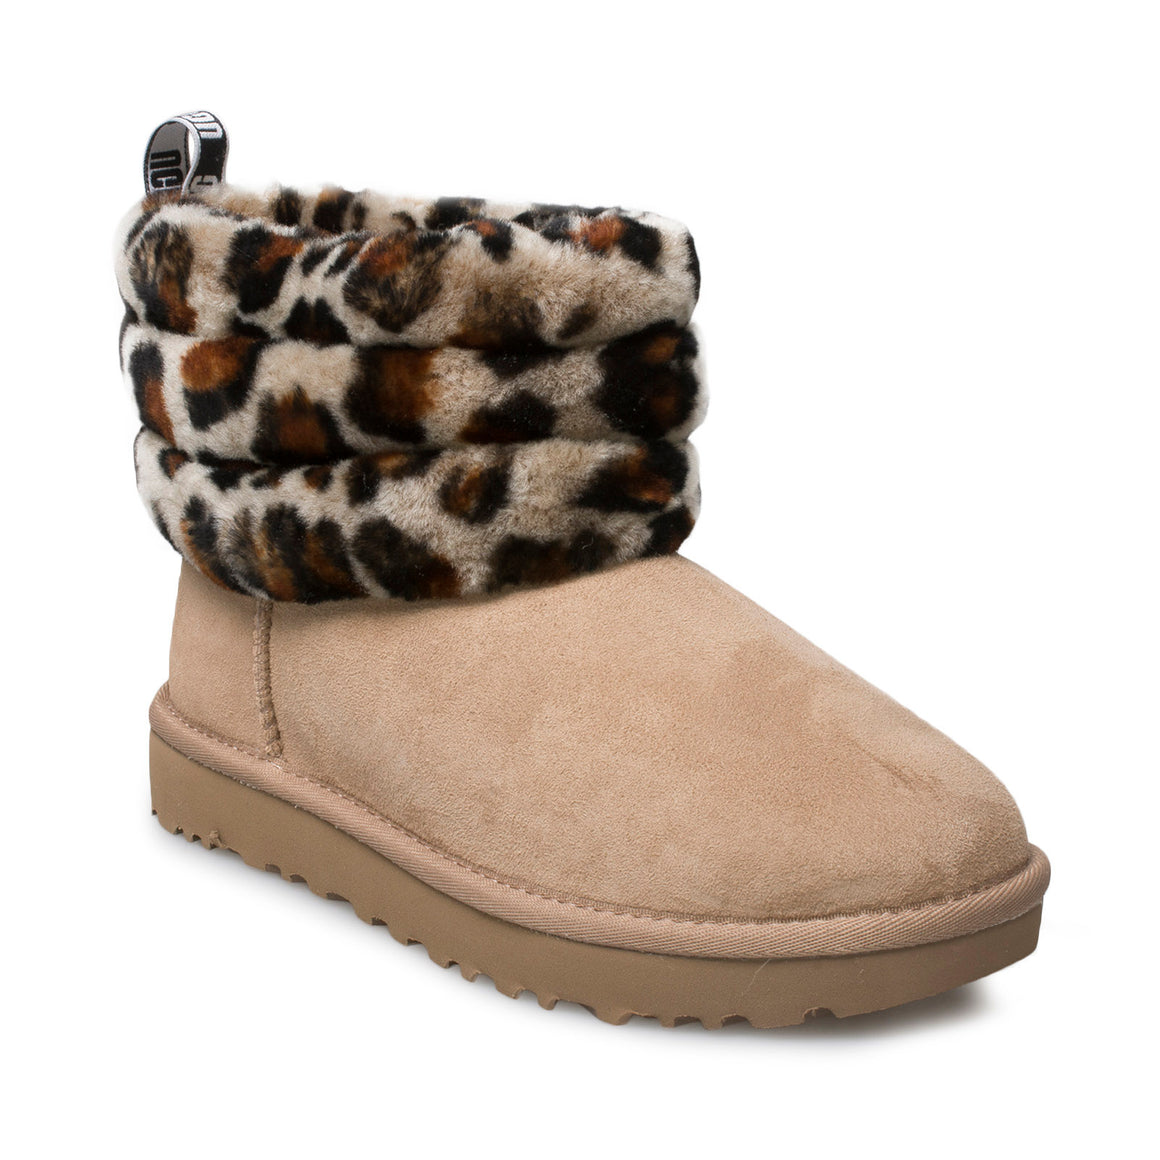 UGG Fluff Mini Quilted Leopard Amphora Boots - Women's